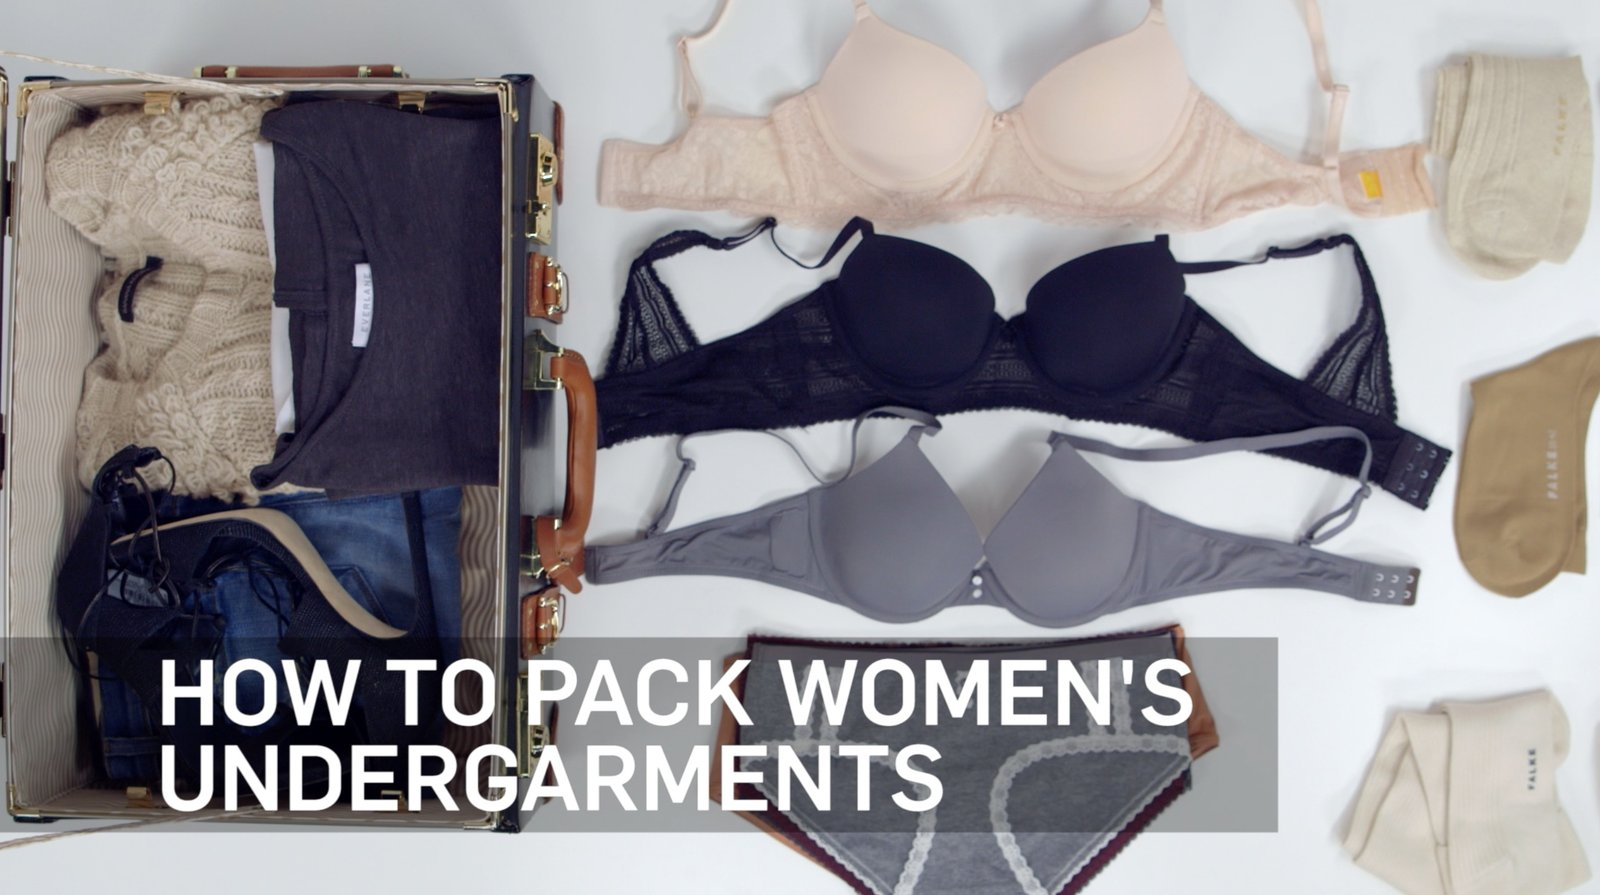 VIDEO: How to Pack Undergarments